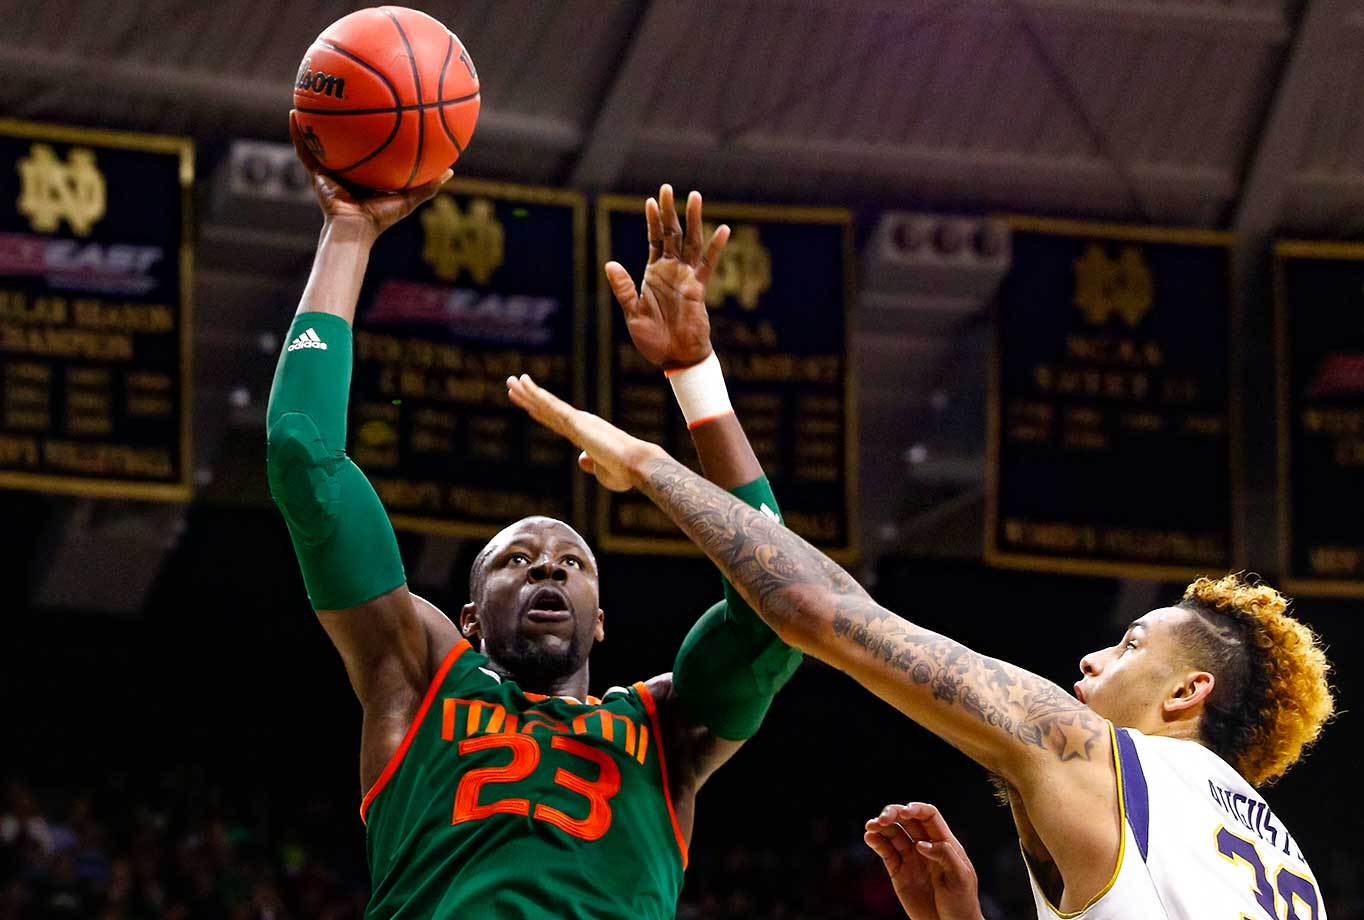 Tonye Jekiri of the Miami Hurricanes shoots against Zach Auguste of the Notre Dame Fighting Irish.